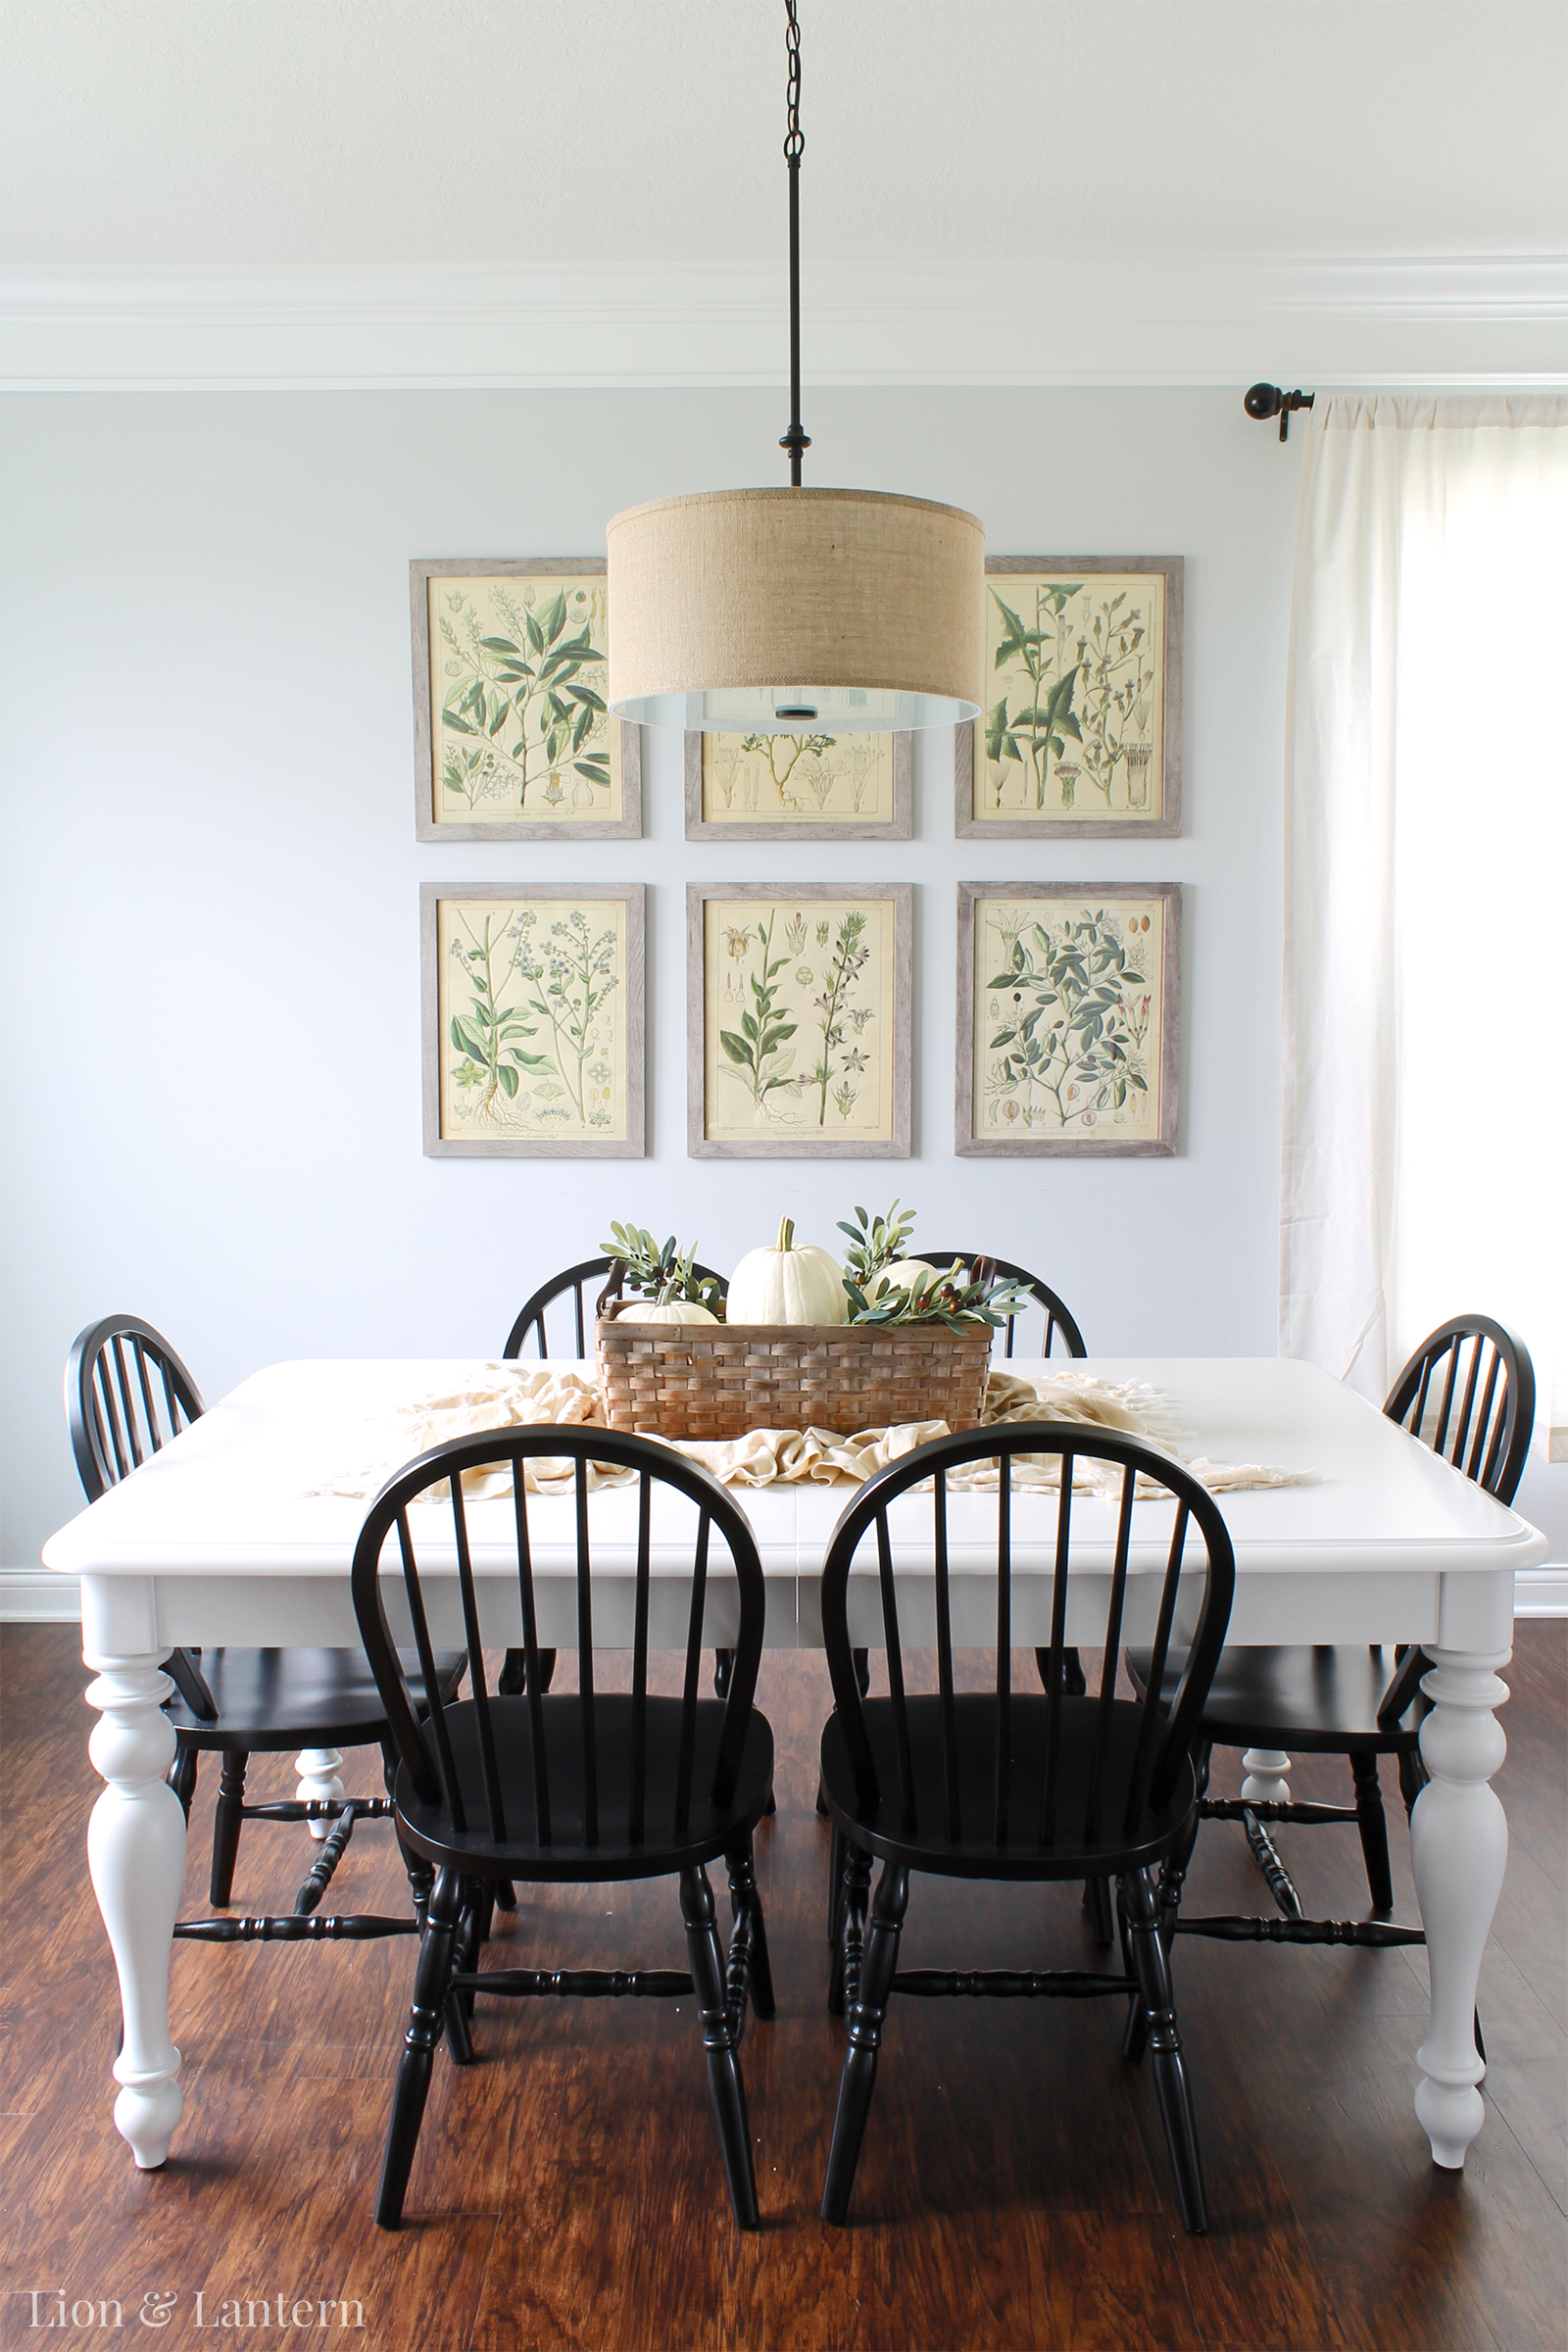 Fall Dining Room at LionAndLantern.com. Simple autumn decor, white pumpkins, greenery, candlesticks, farmhouse dining room, southern style.